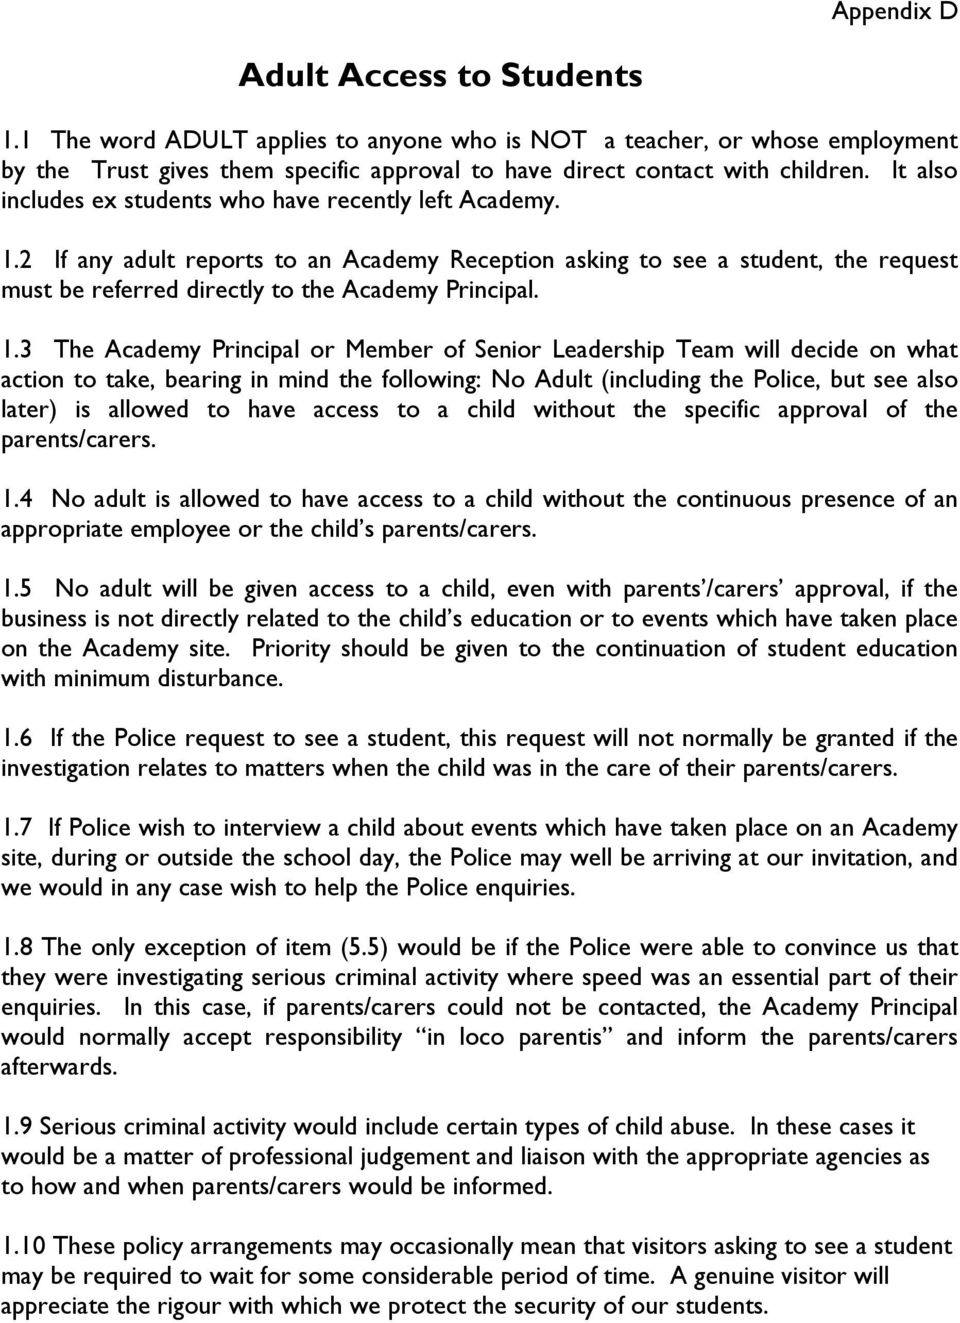 1.3 The Academy Principal or Member of Senior Leadership Team will decide on what action to take, bearing in mind the following: No Adult (including the Police, but see also later) is allowed to have